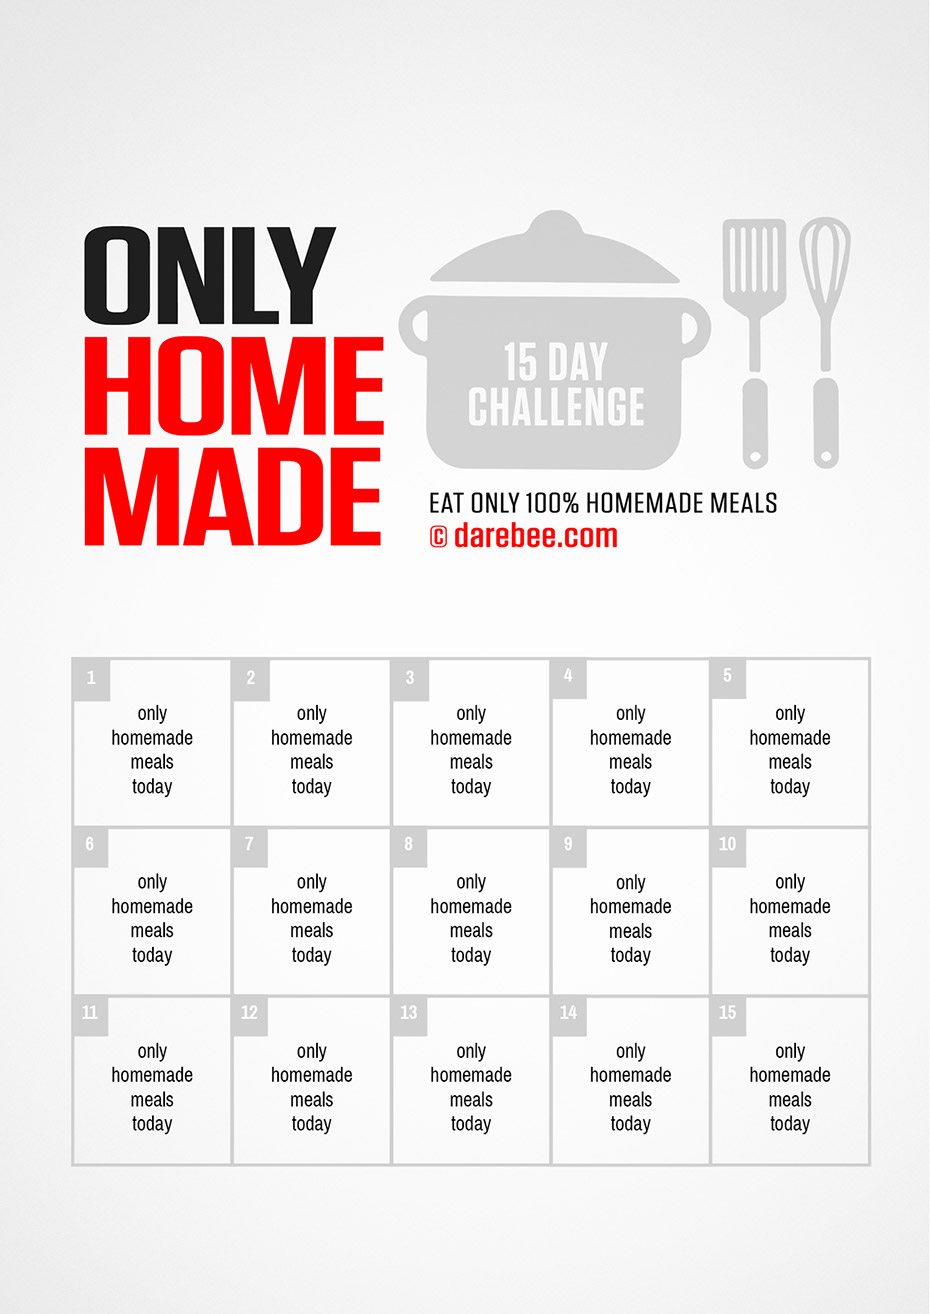 Only Homemade Meals for 15 Days Challenge by DAREBEE